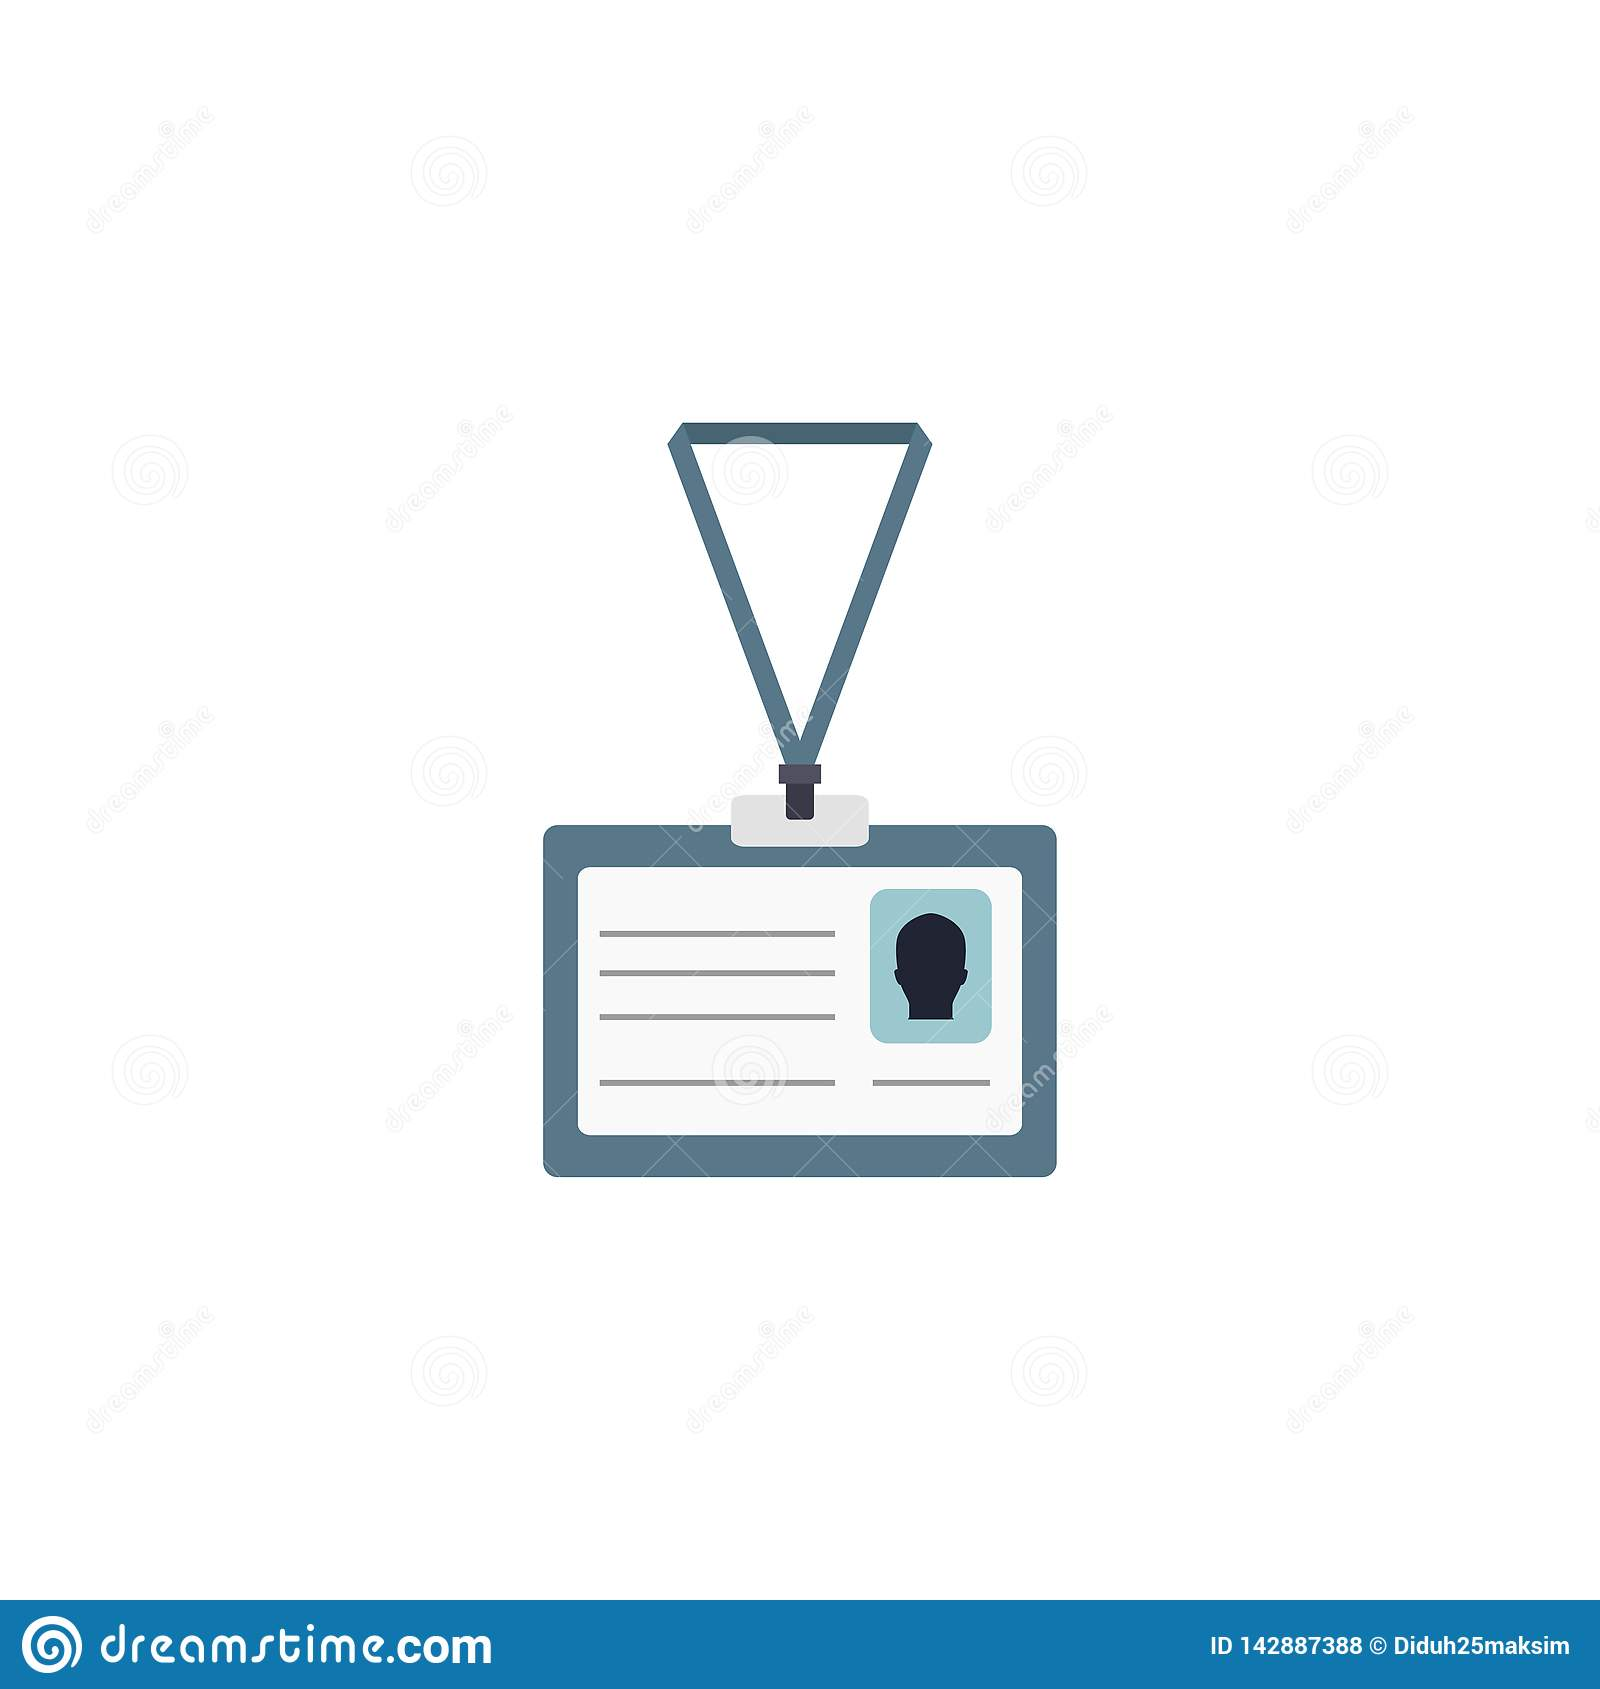 Identification card icon. Identity. Vector illustration. EPS 10